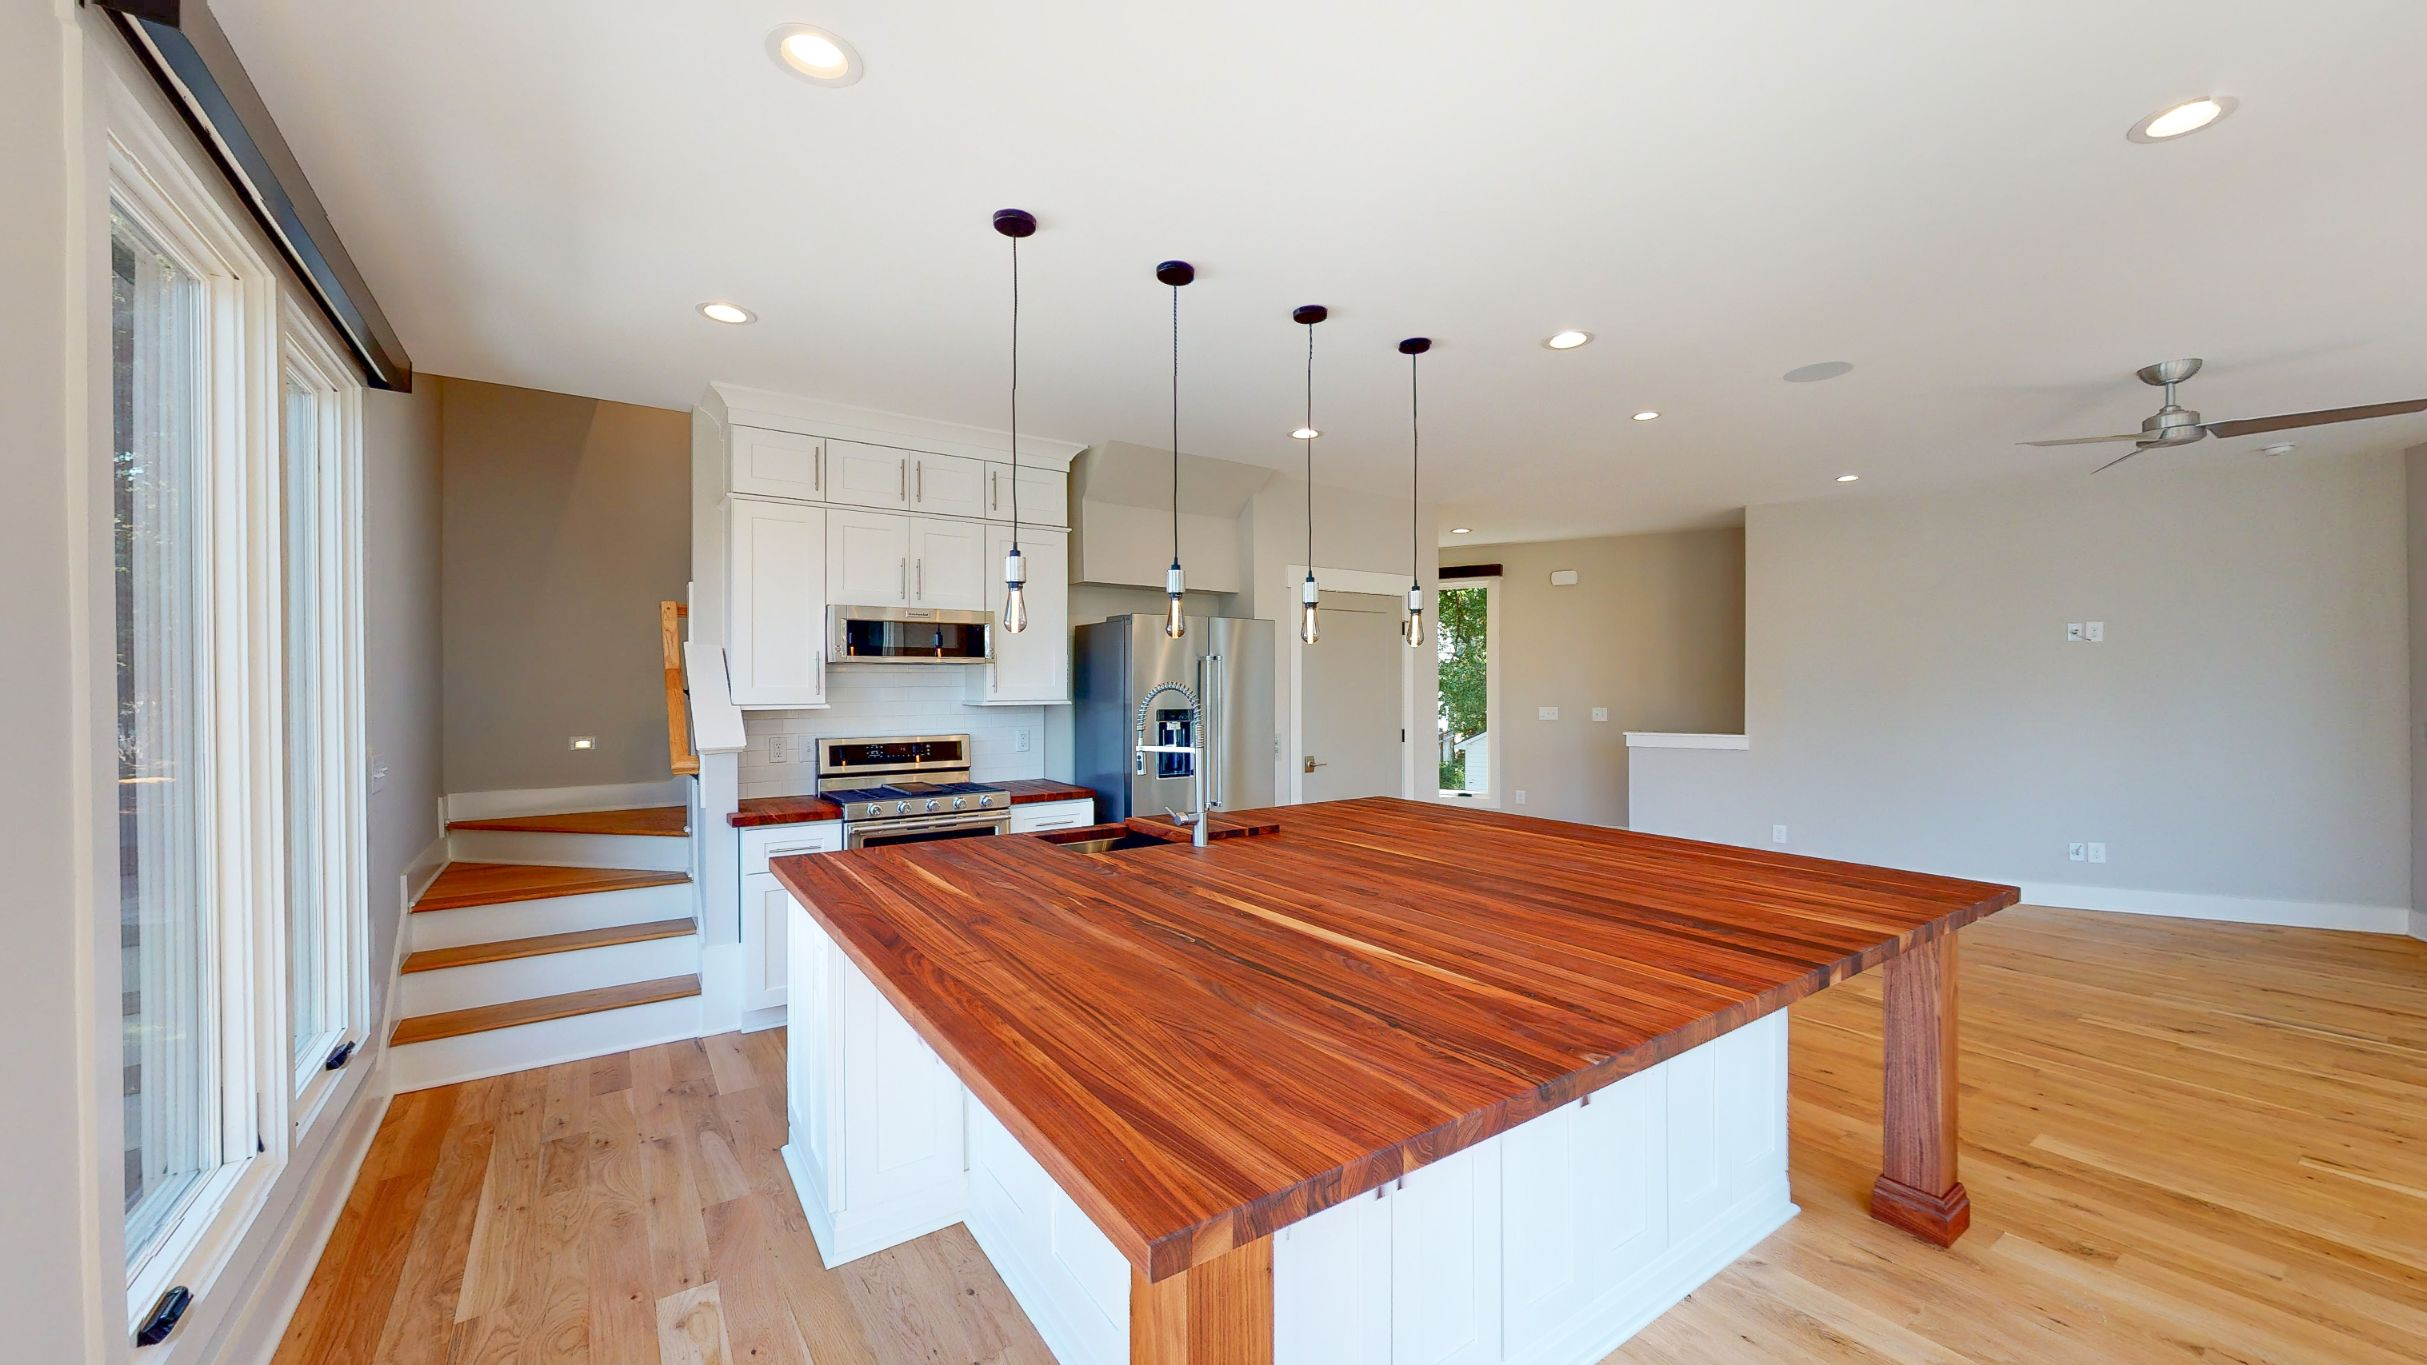 227 Georgetown Road Raleigh NC 27608 Built by Urban Building Solutions Open Concept Kitchen